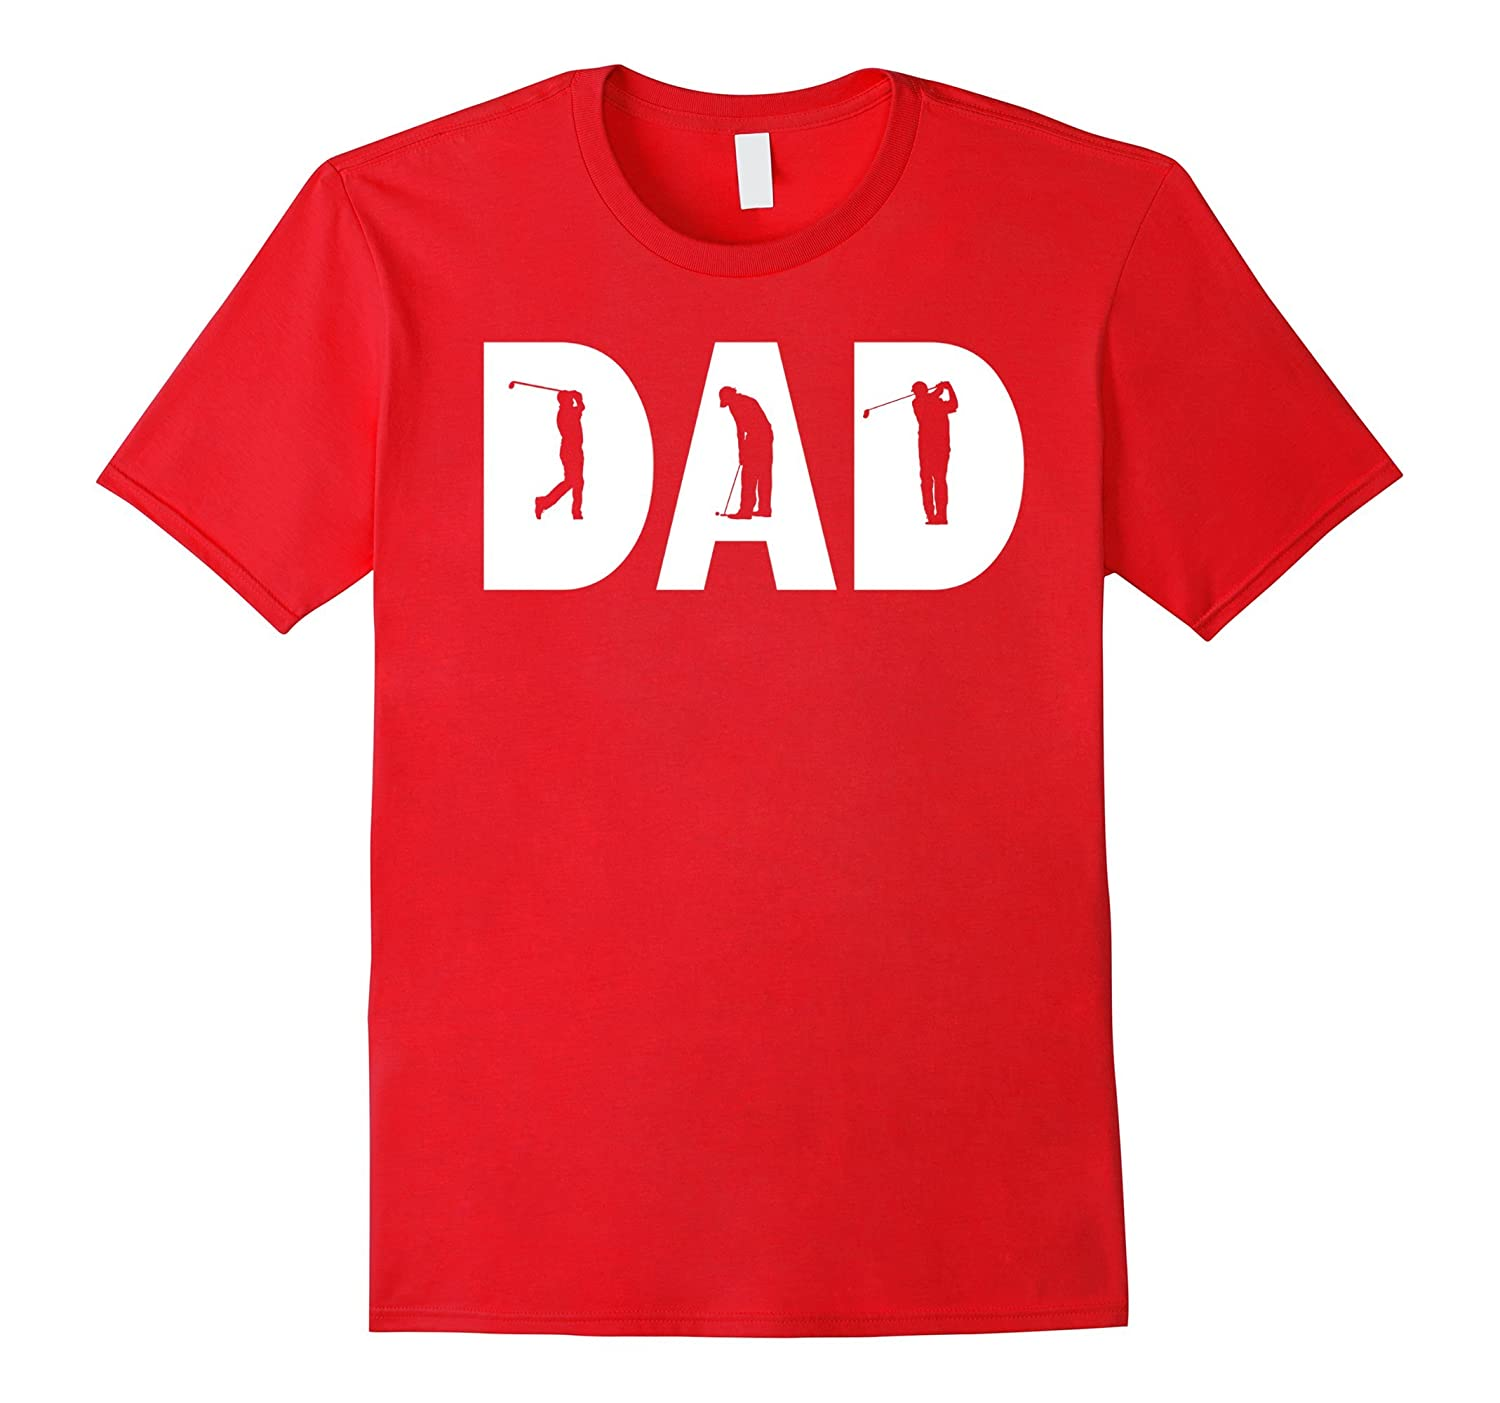 Golf Dad - Funny Tshirt for Men Golf Gifts for Fathers Day-CD